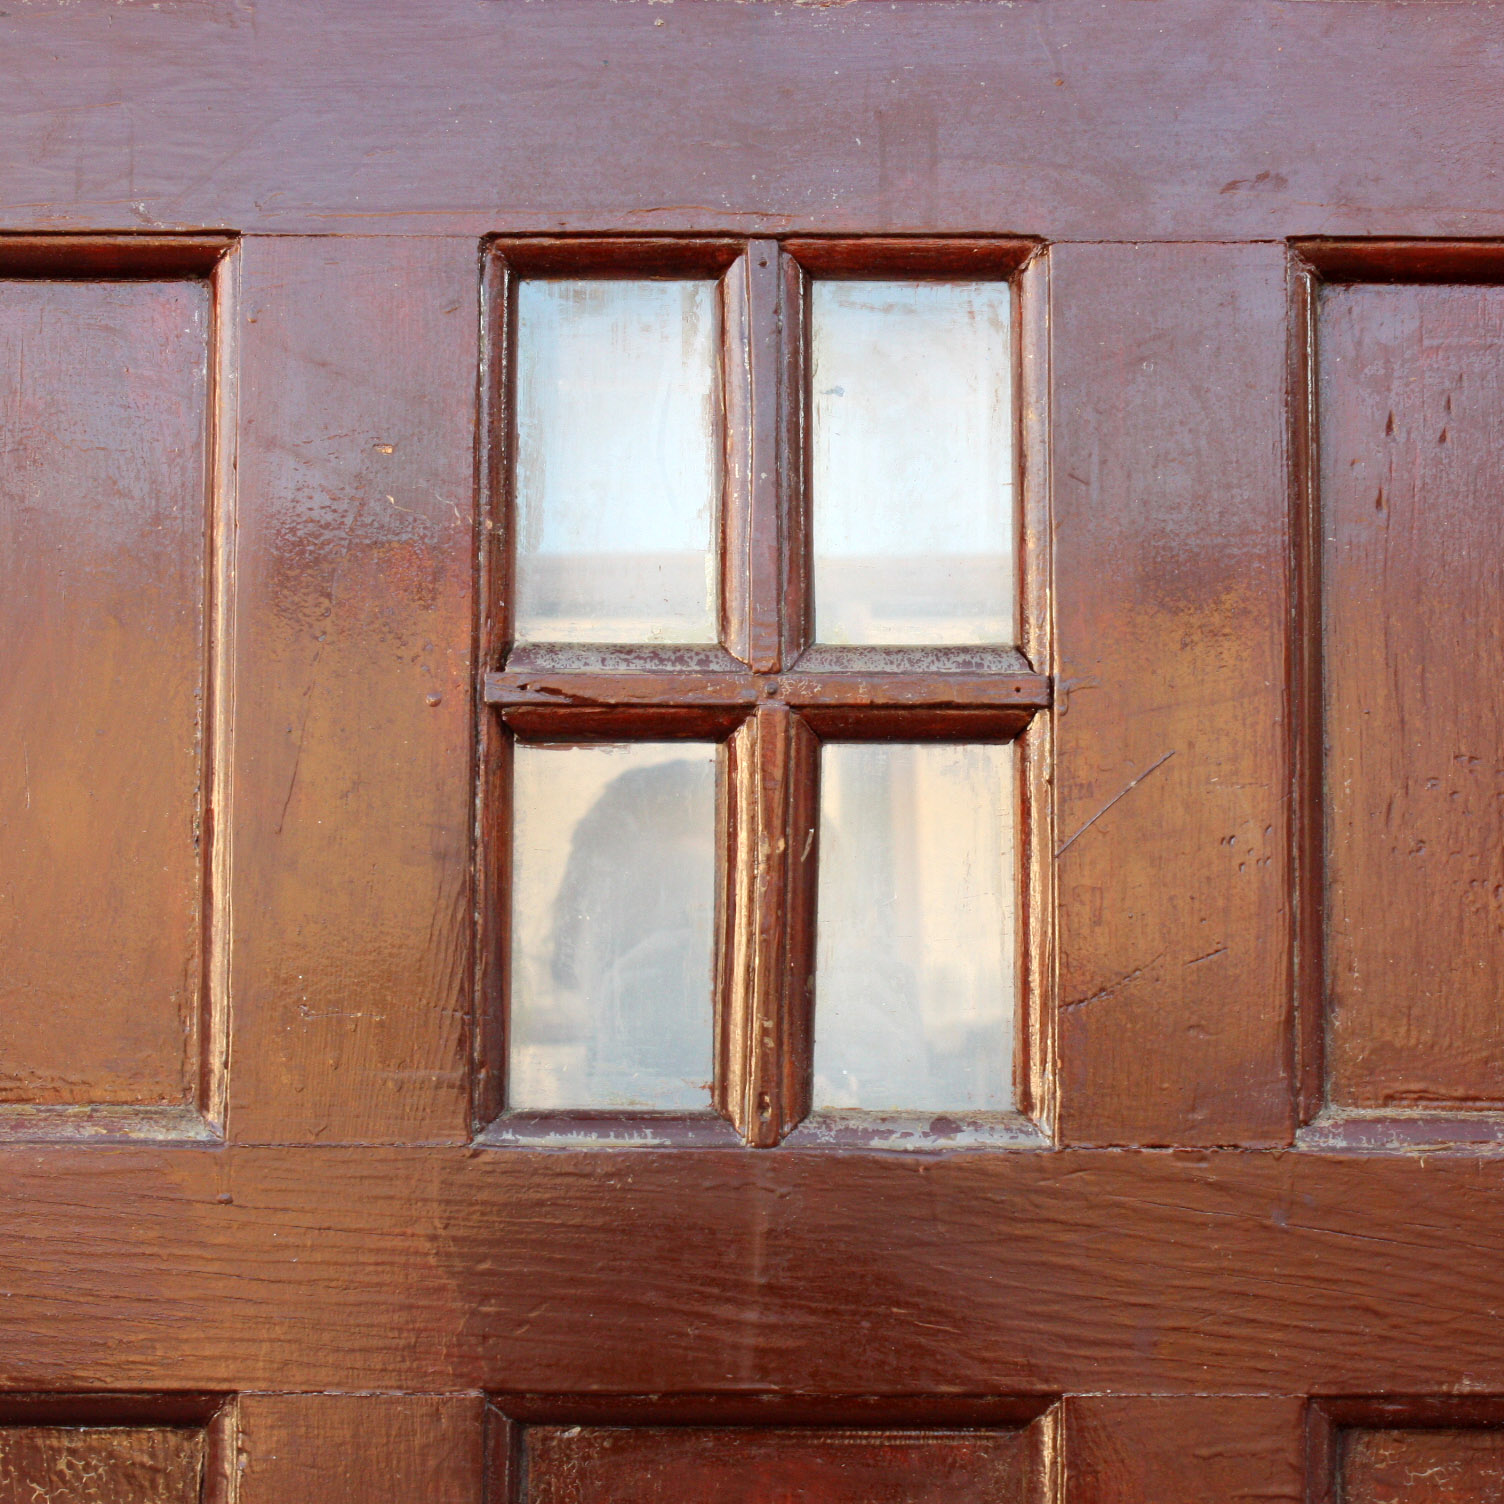 Salvaged Paneled 36 Front Door With Four Pane Window Ned127 For Sale Classifieds